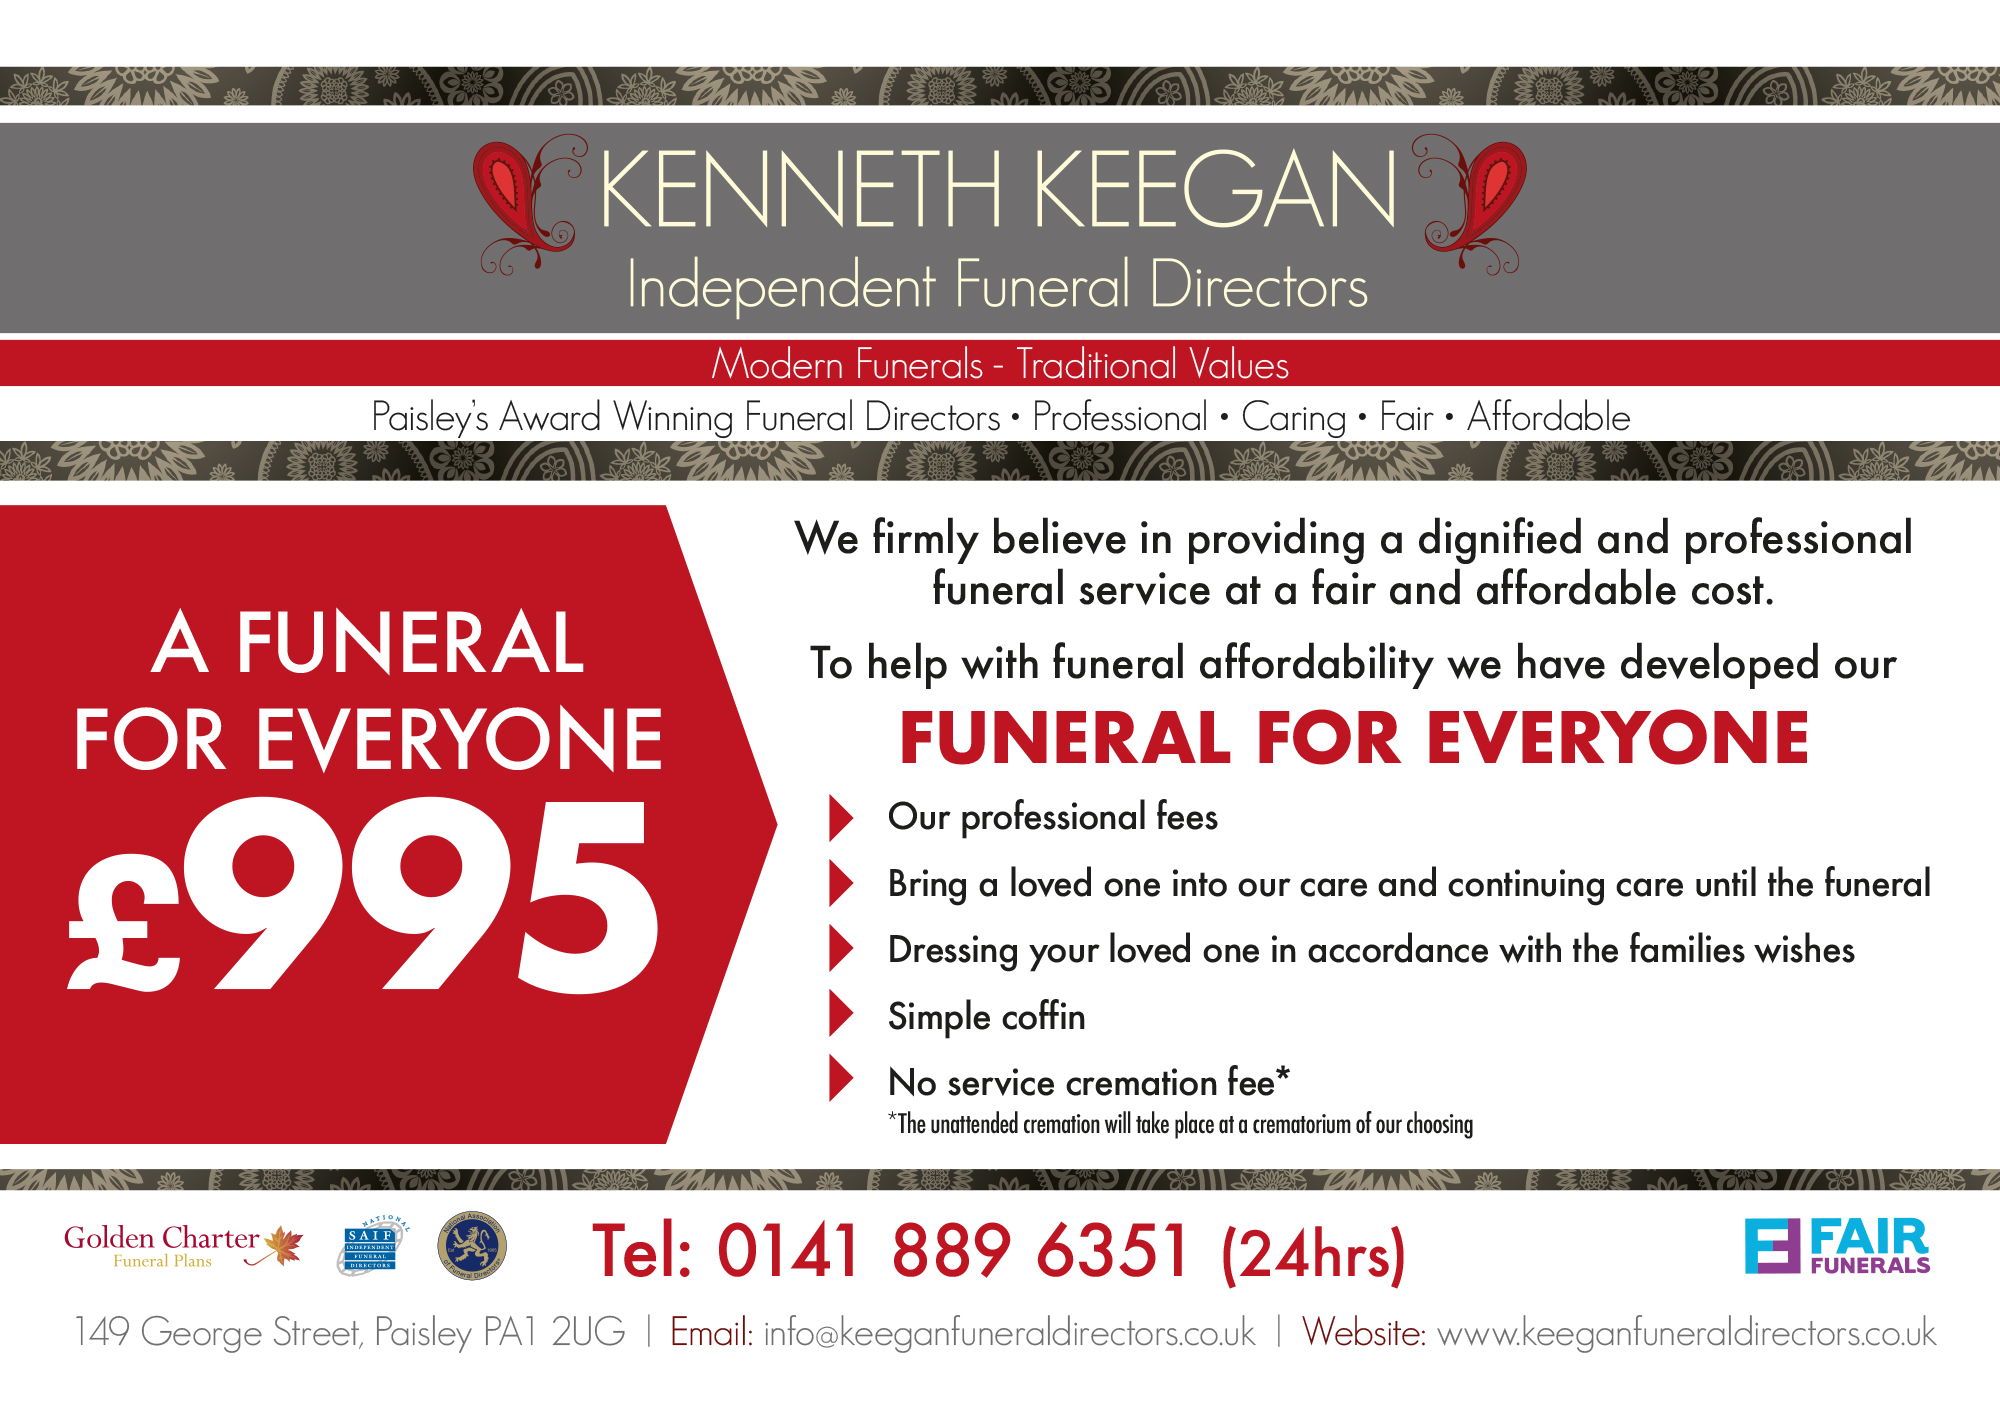 Kenneth-Keegan-A-funeral-for-everyone-A4L-31-05-18